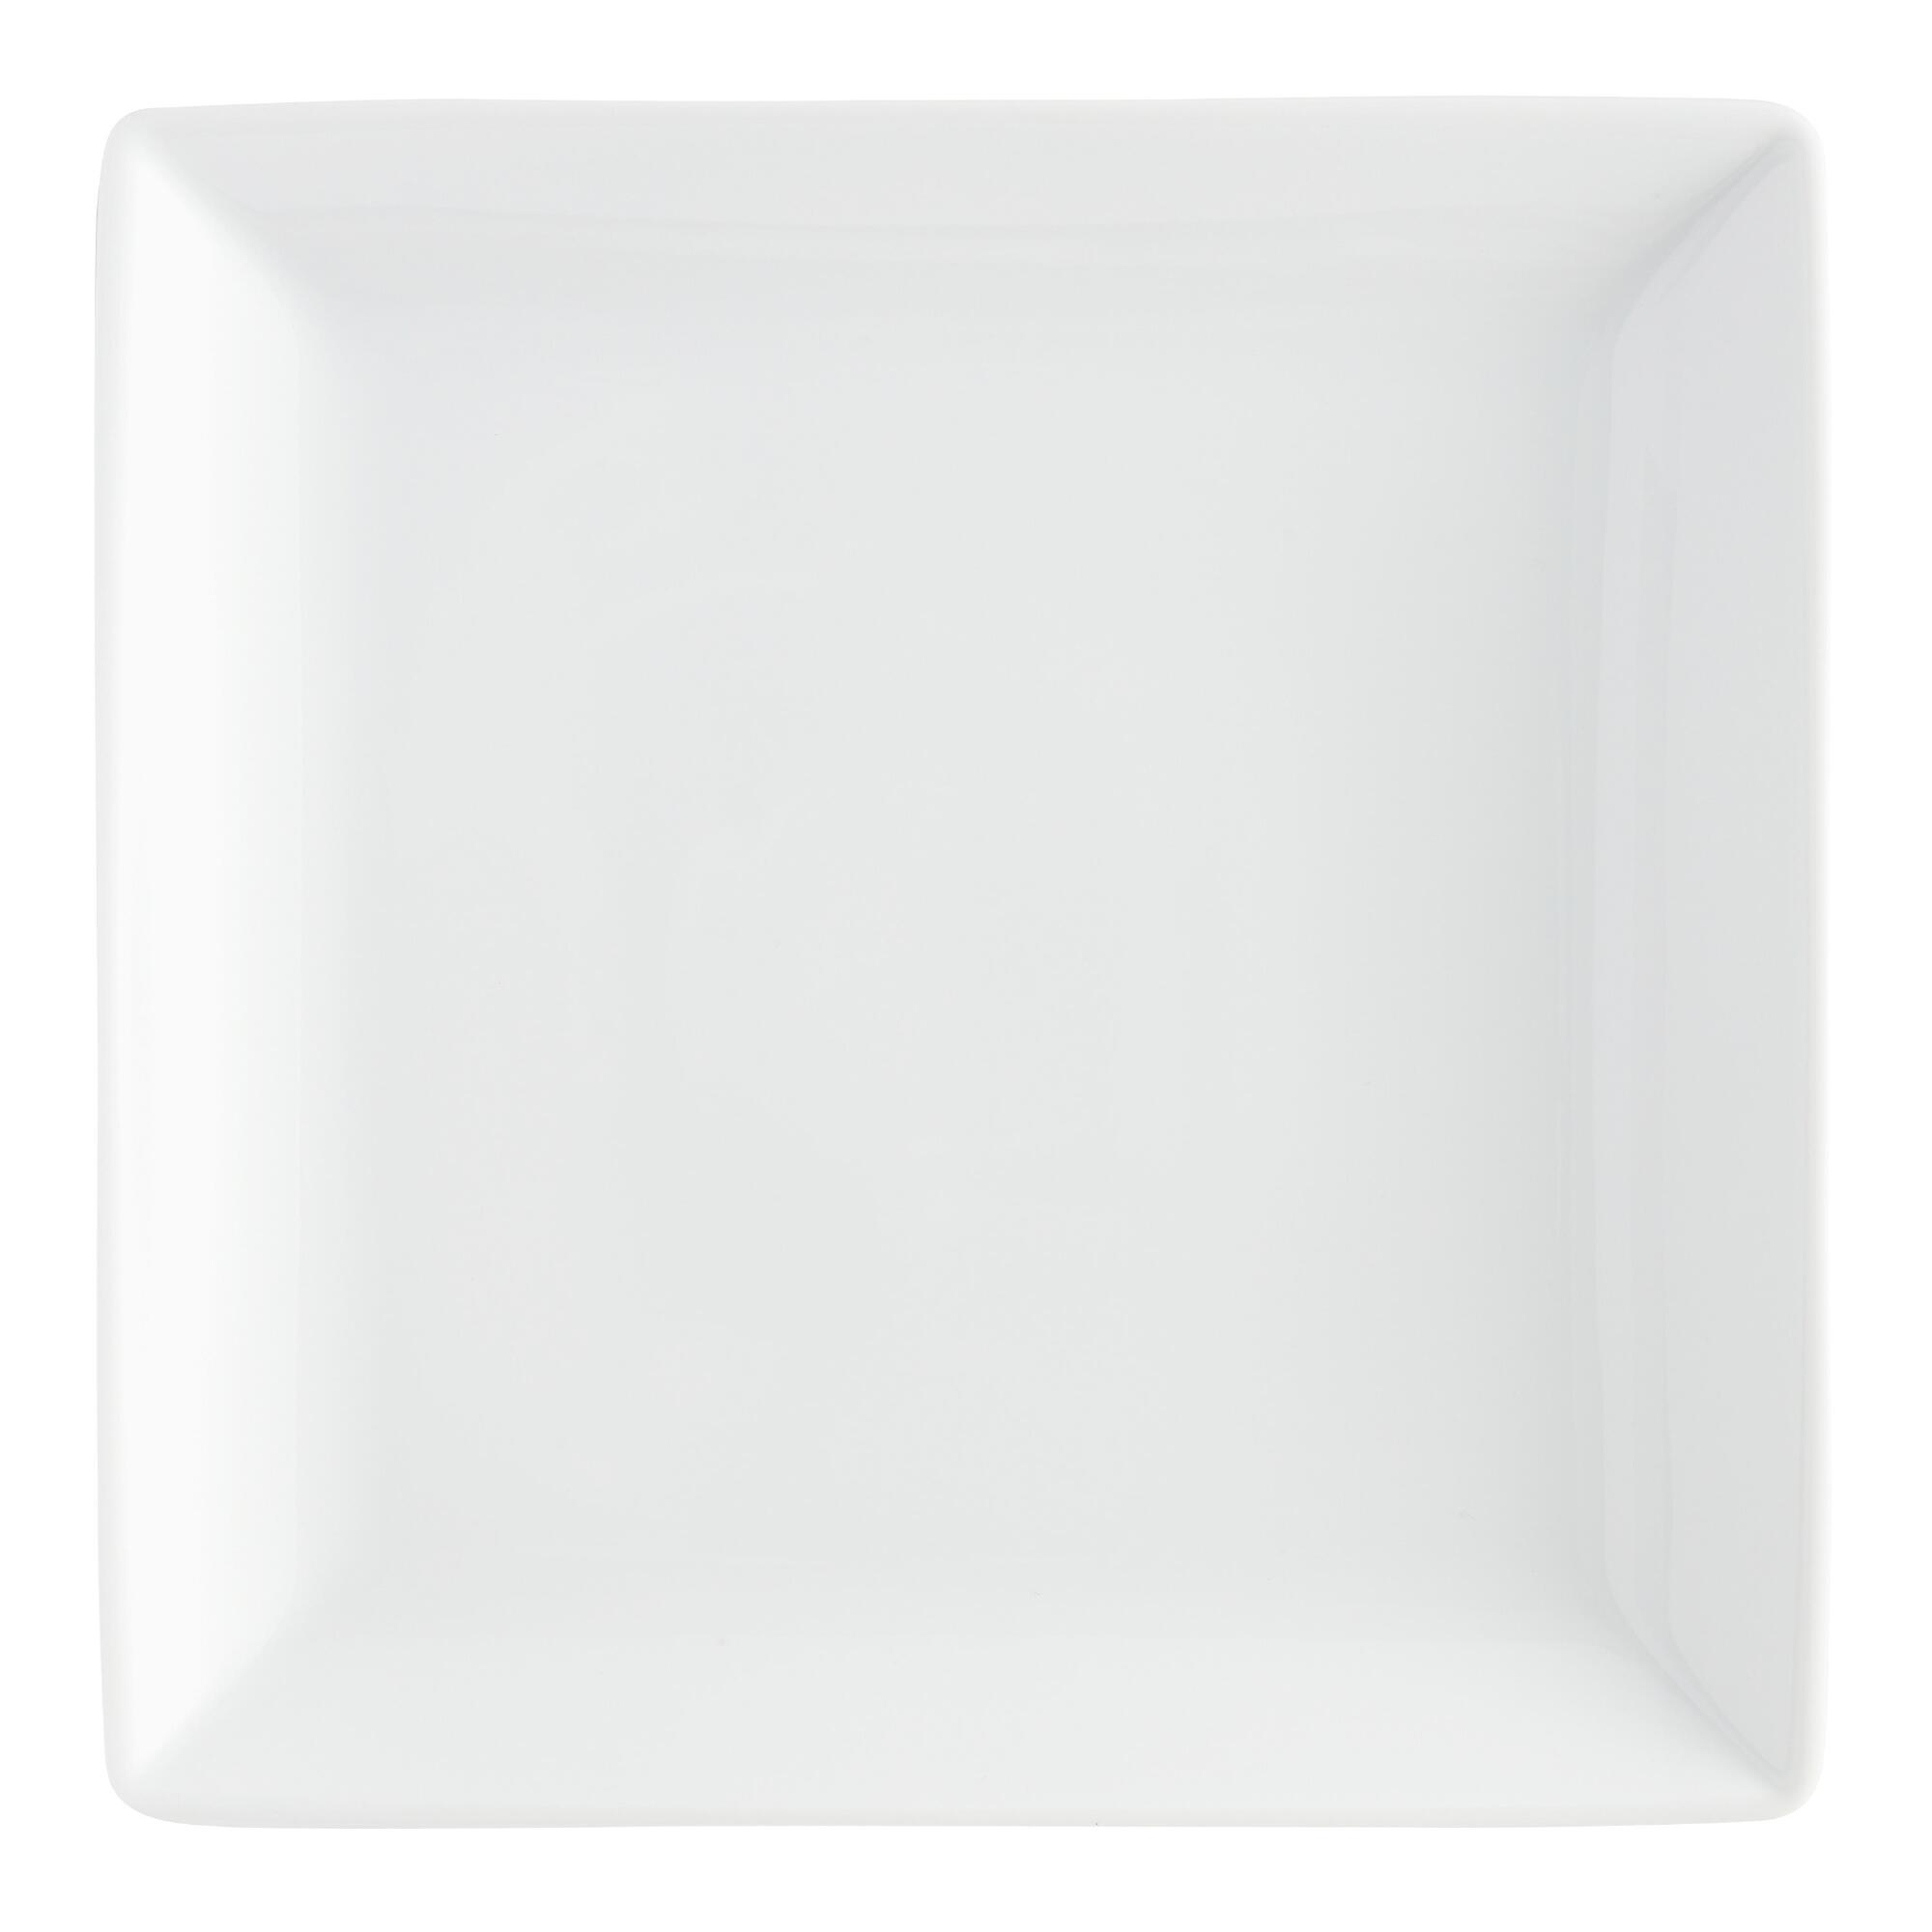 White Square coupe Dinner Plates, set of 4 - Porcelain by World Market